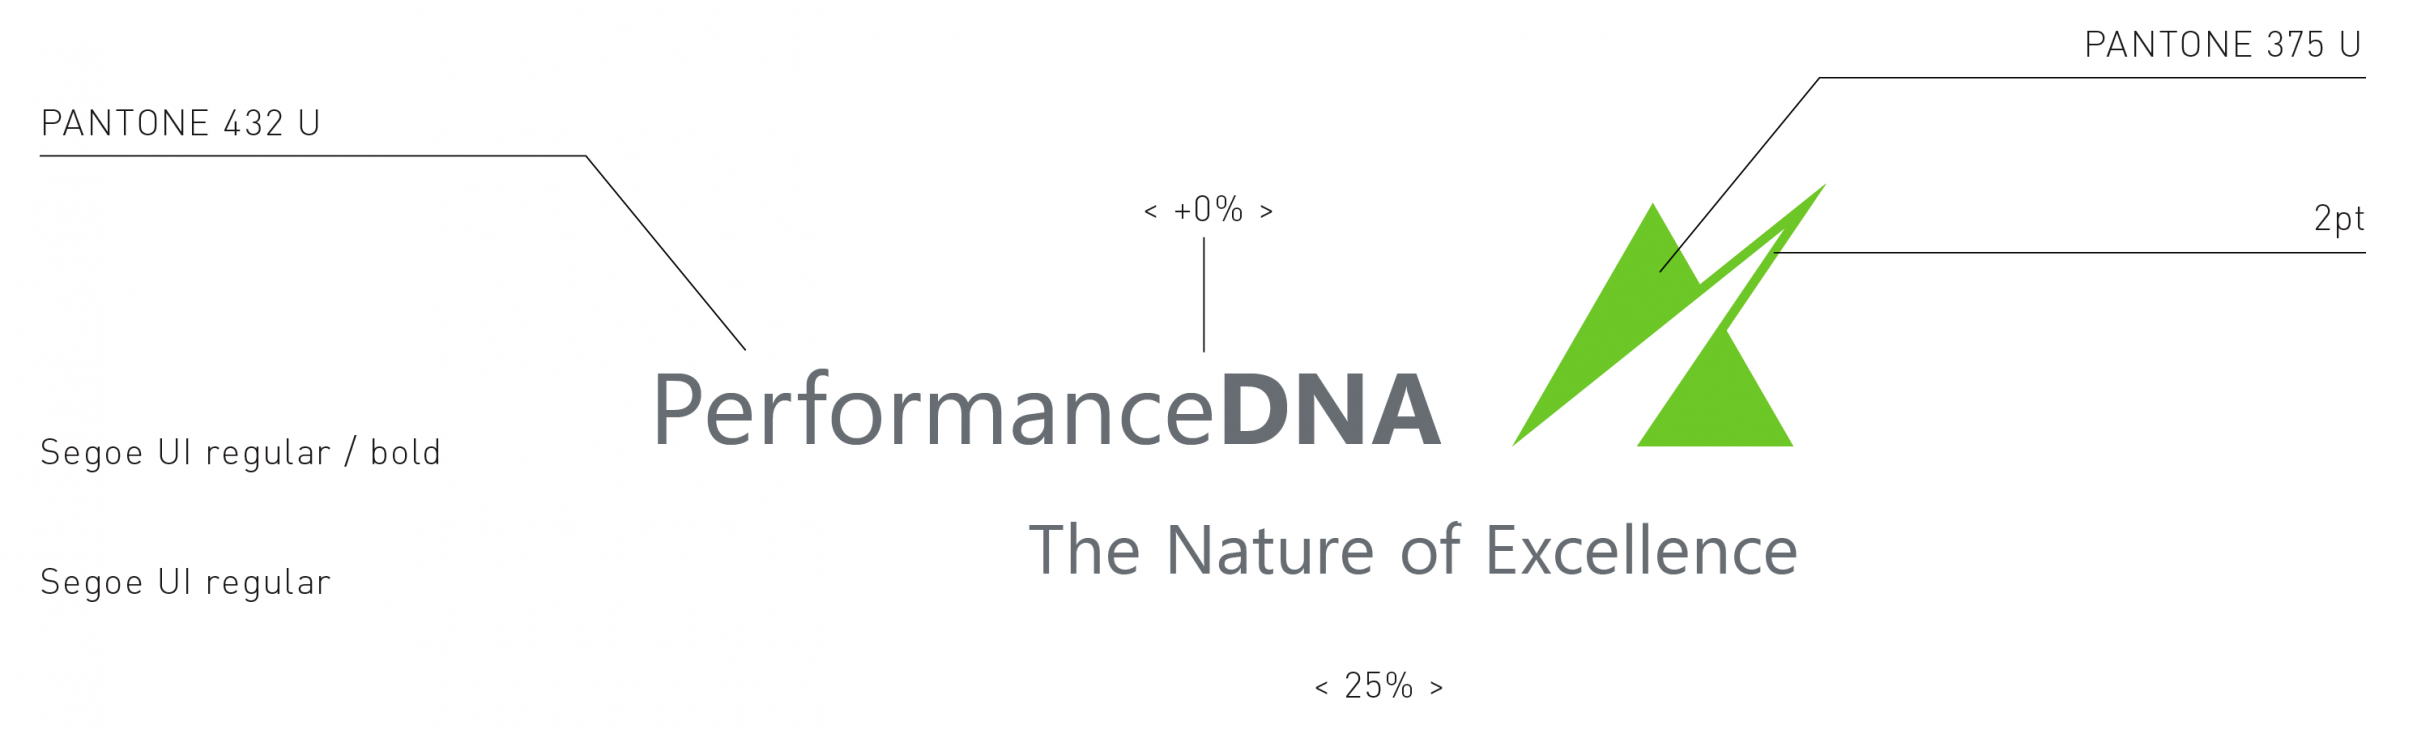 Corporate Design Guide für Performance DNA: DIE NEUDENKER® Agentur, Darmstadt